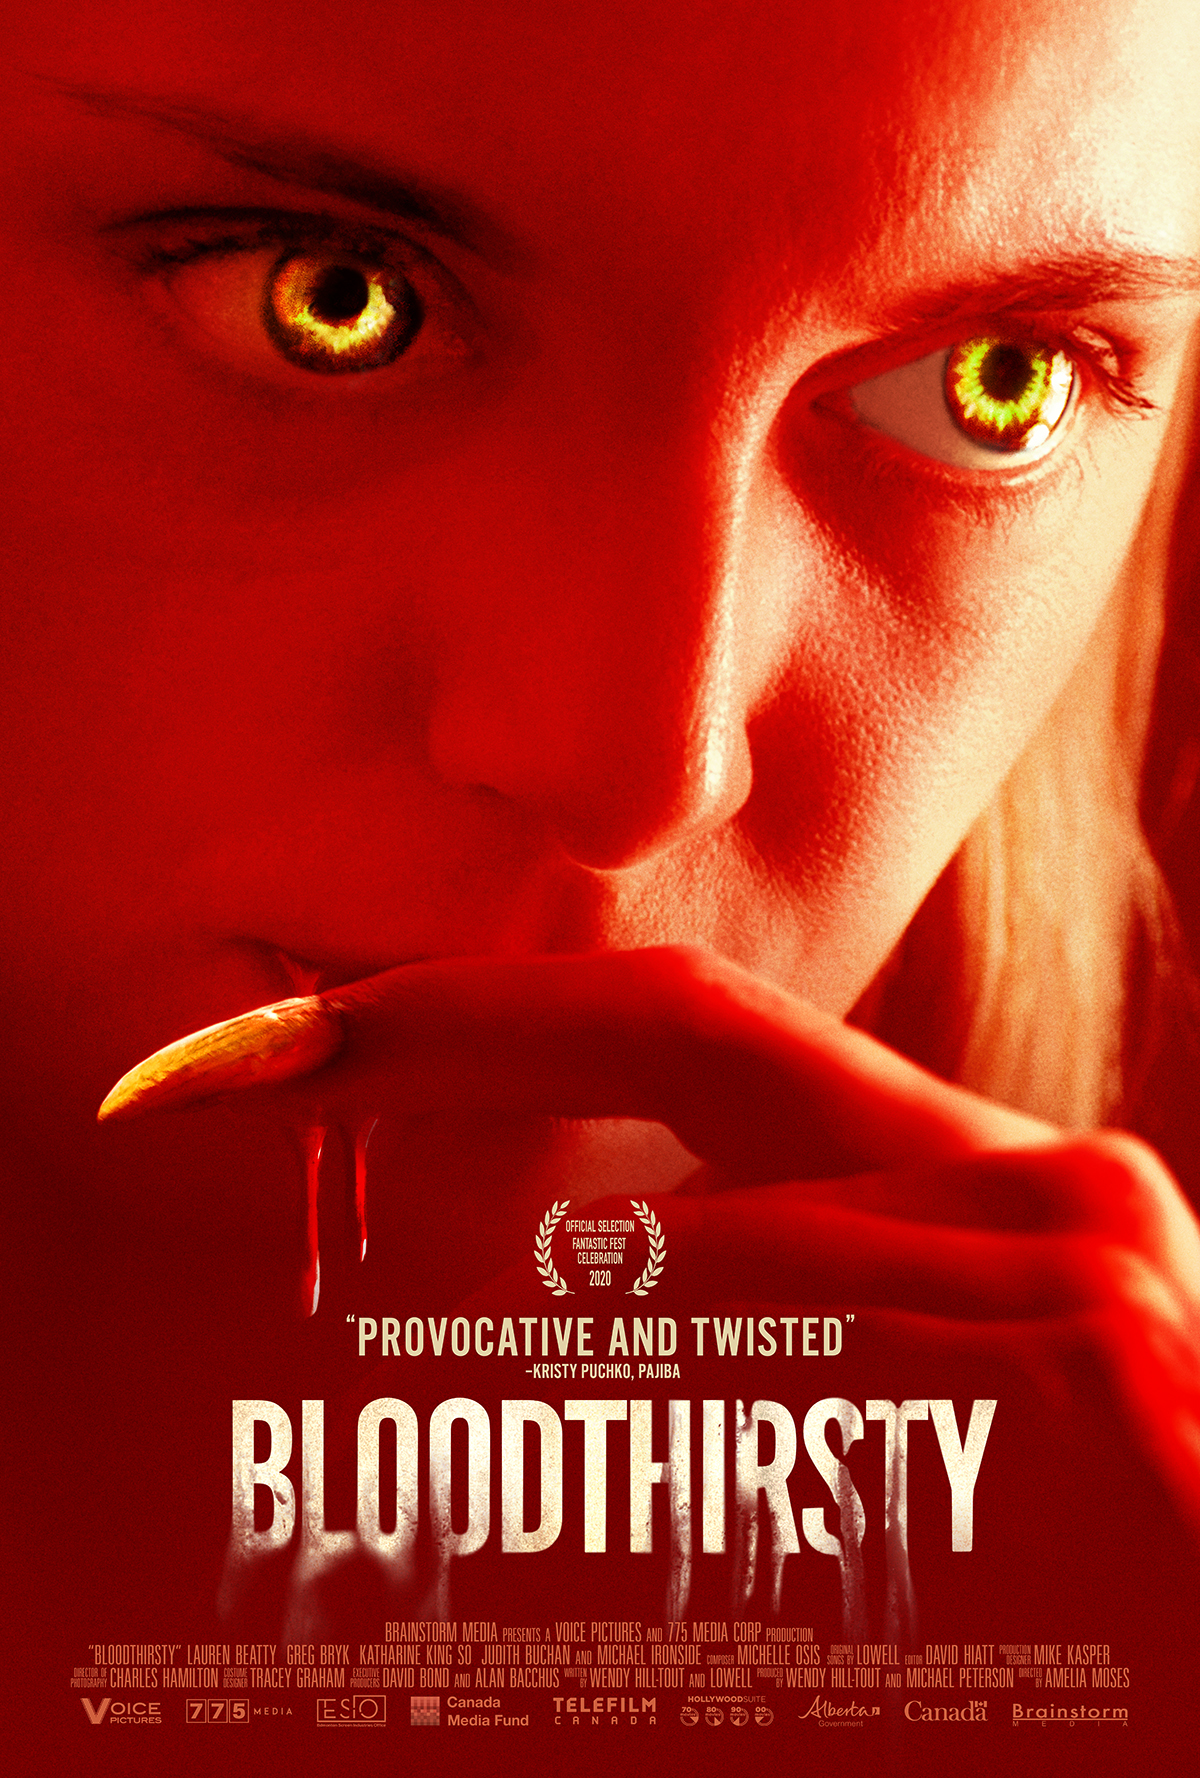 Brainstorm Media's BLOODTHIRSTY & Lowell's BLOODTHIRSTY (MUSIC FROM THE MOTION PICTURE) EP Available Now!